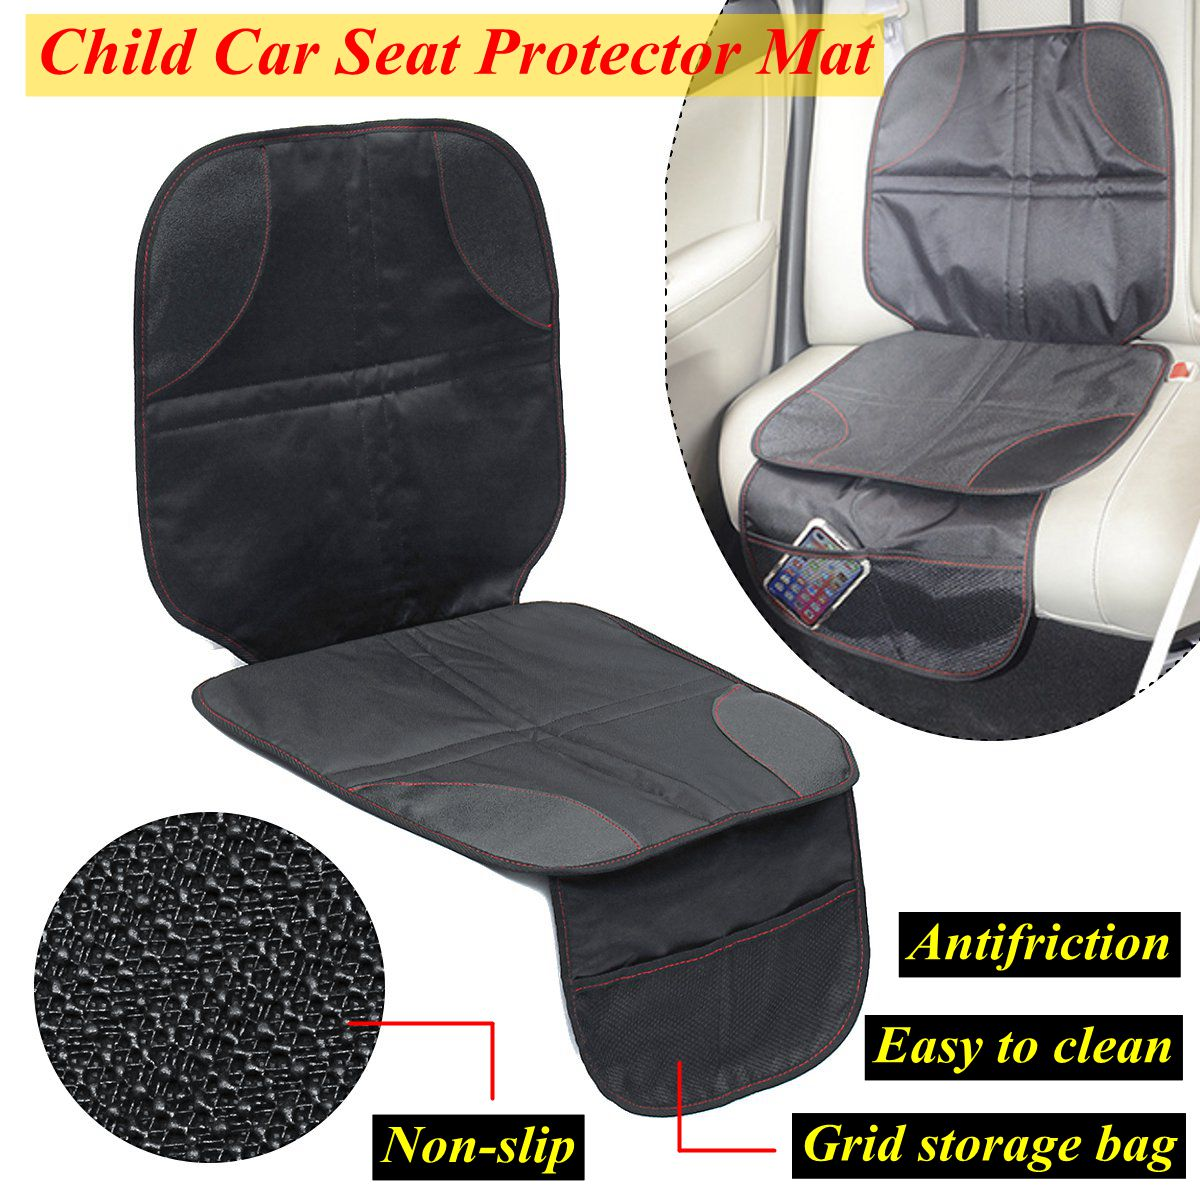 Us 10 14 36 Off New Infant Baby Child Easy Clean Anti Slip Car Seat Protector Mat Cushion Cover W Storage Function For Kids Children Universal In